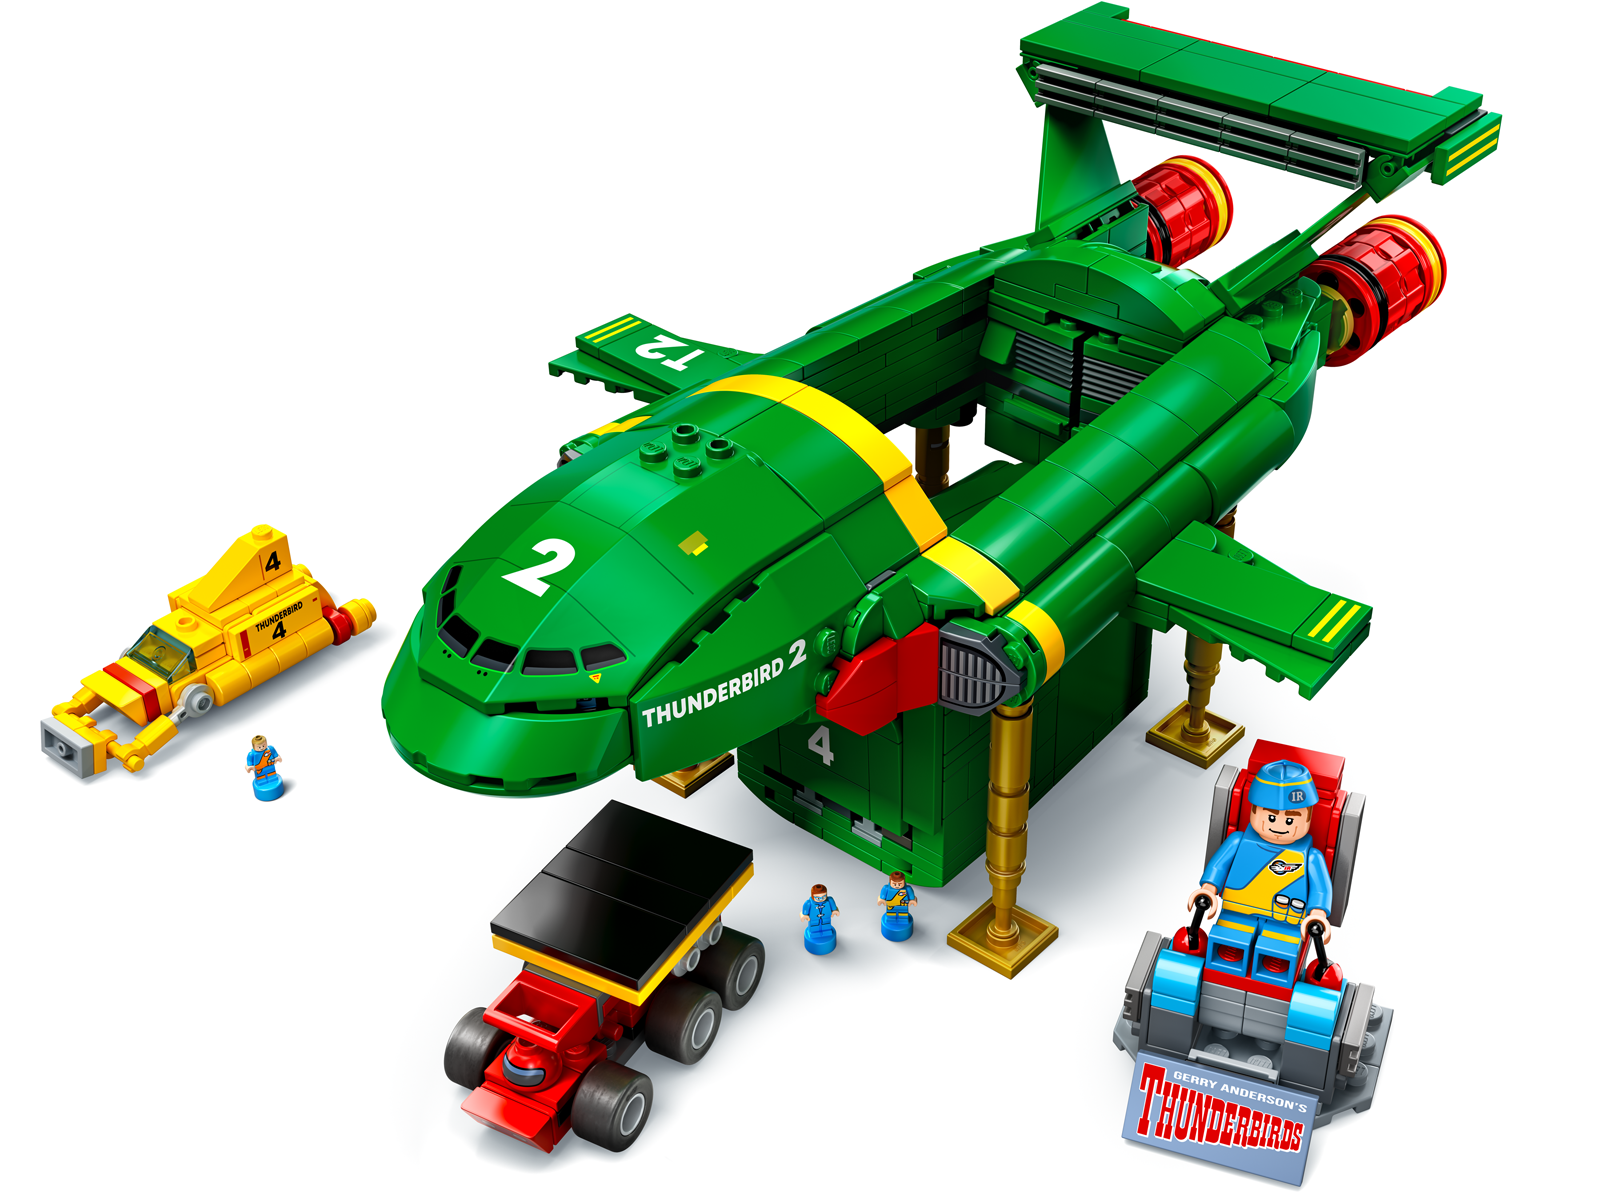 Lego Thunderbird 2? Just 300 More Supporters Needed!